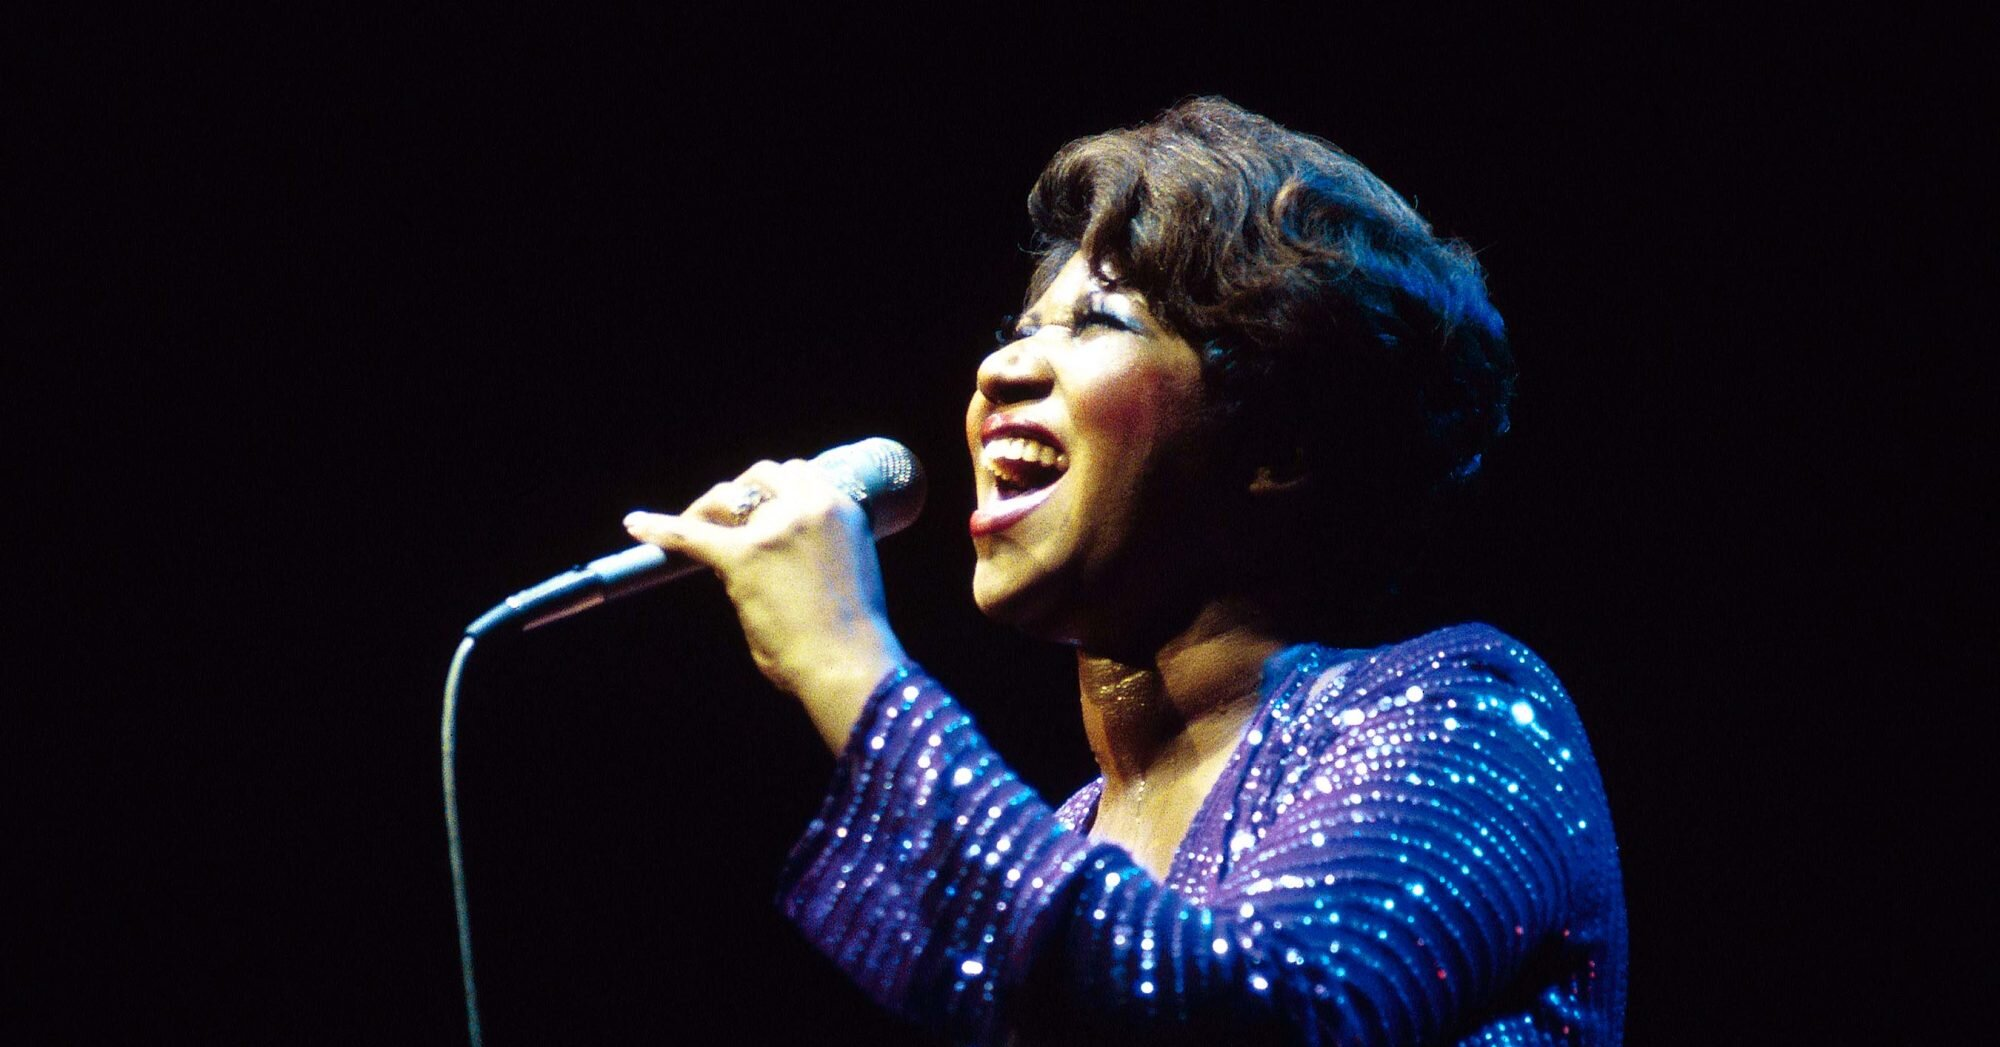 It's official! Aretha Franklin has no. 1 hits in every decade since the '60s